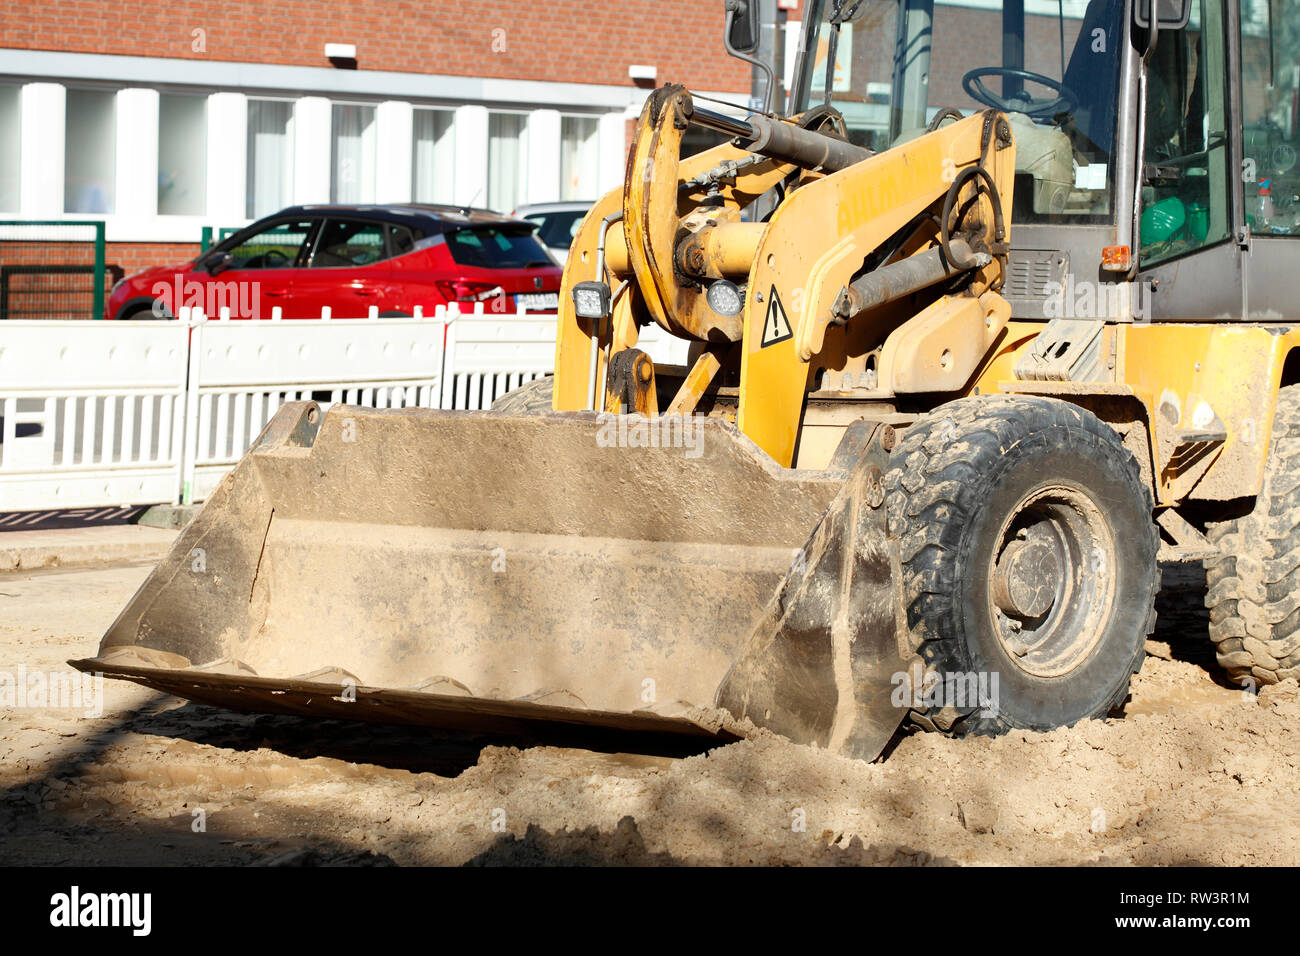 Excavator with excavator bucket on a construction site - Stock Image